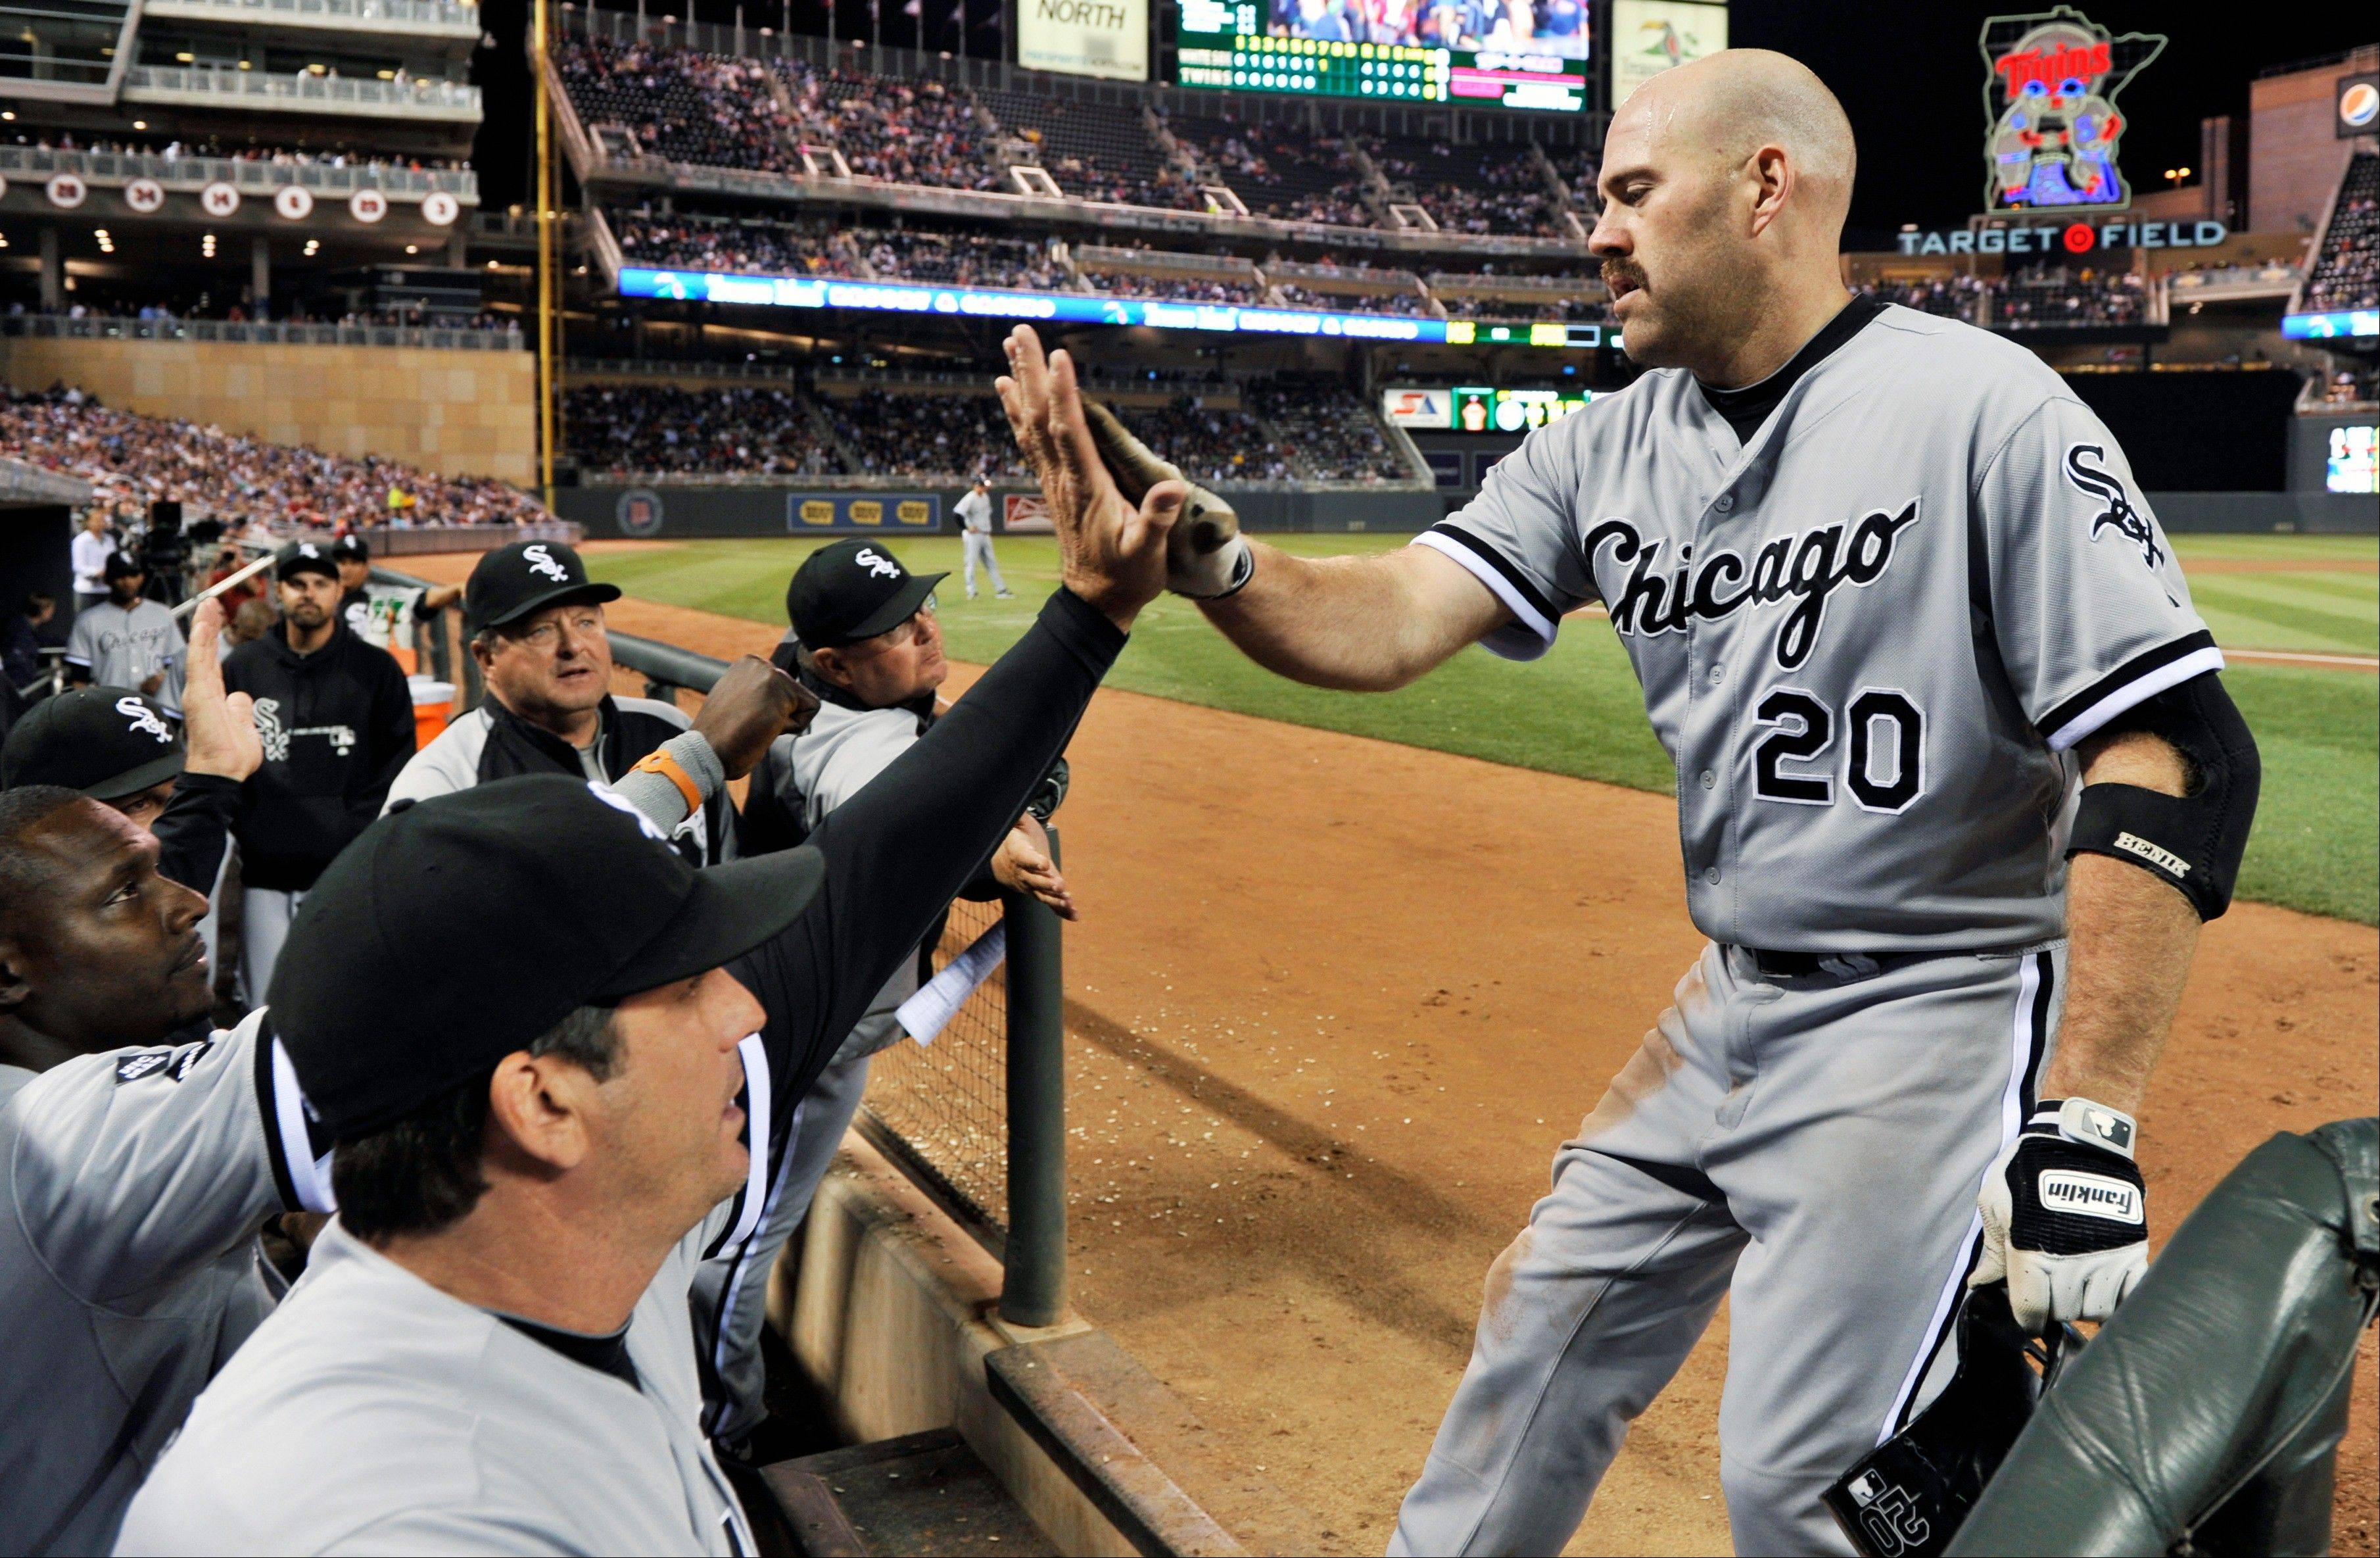 White Sox third baseman Kevin Youkilis could provide the Cubs with instant leadership next season, according to Mike Spellman.